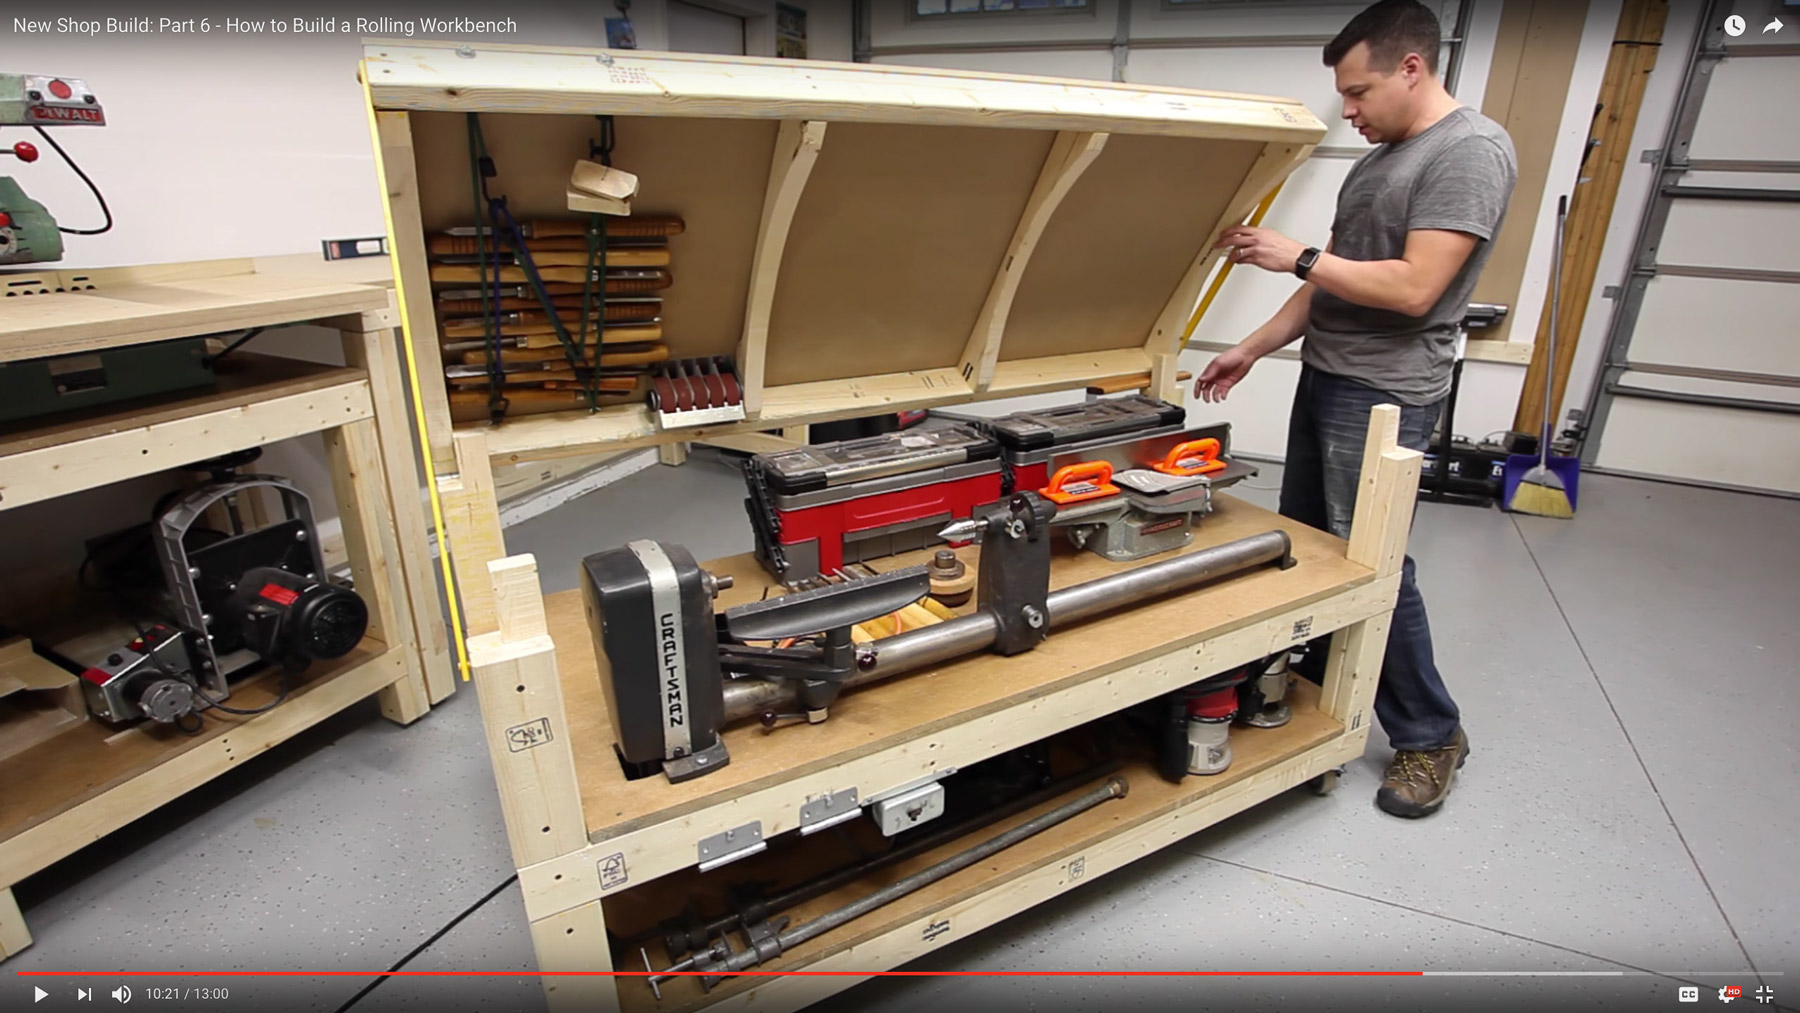 Workbench Plans Tommy S Rolling Workbench And Miter Saw